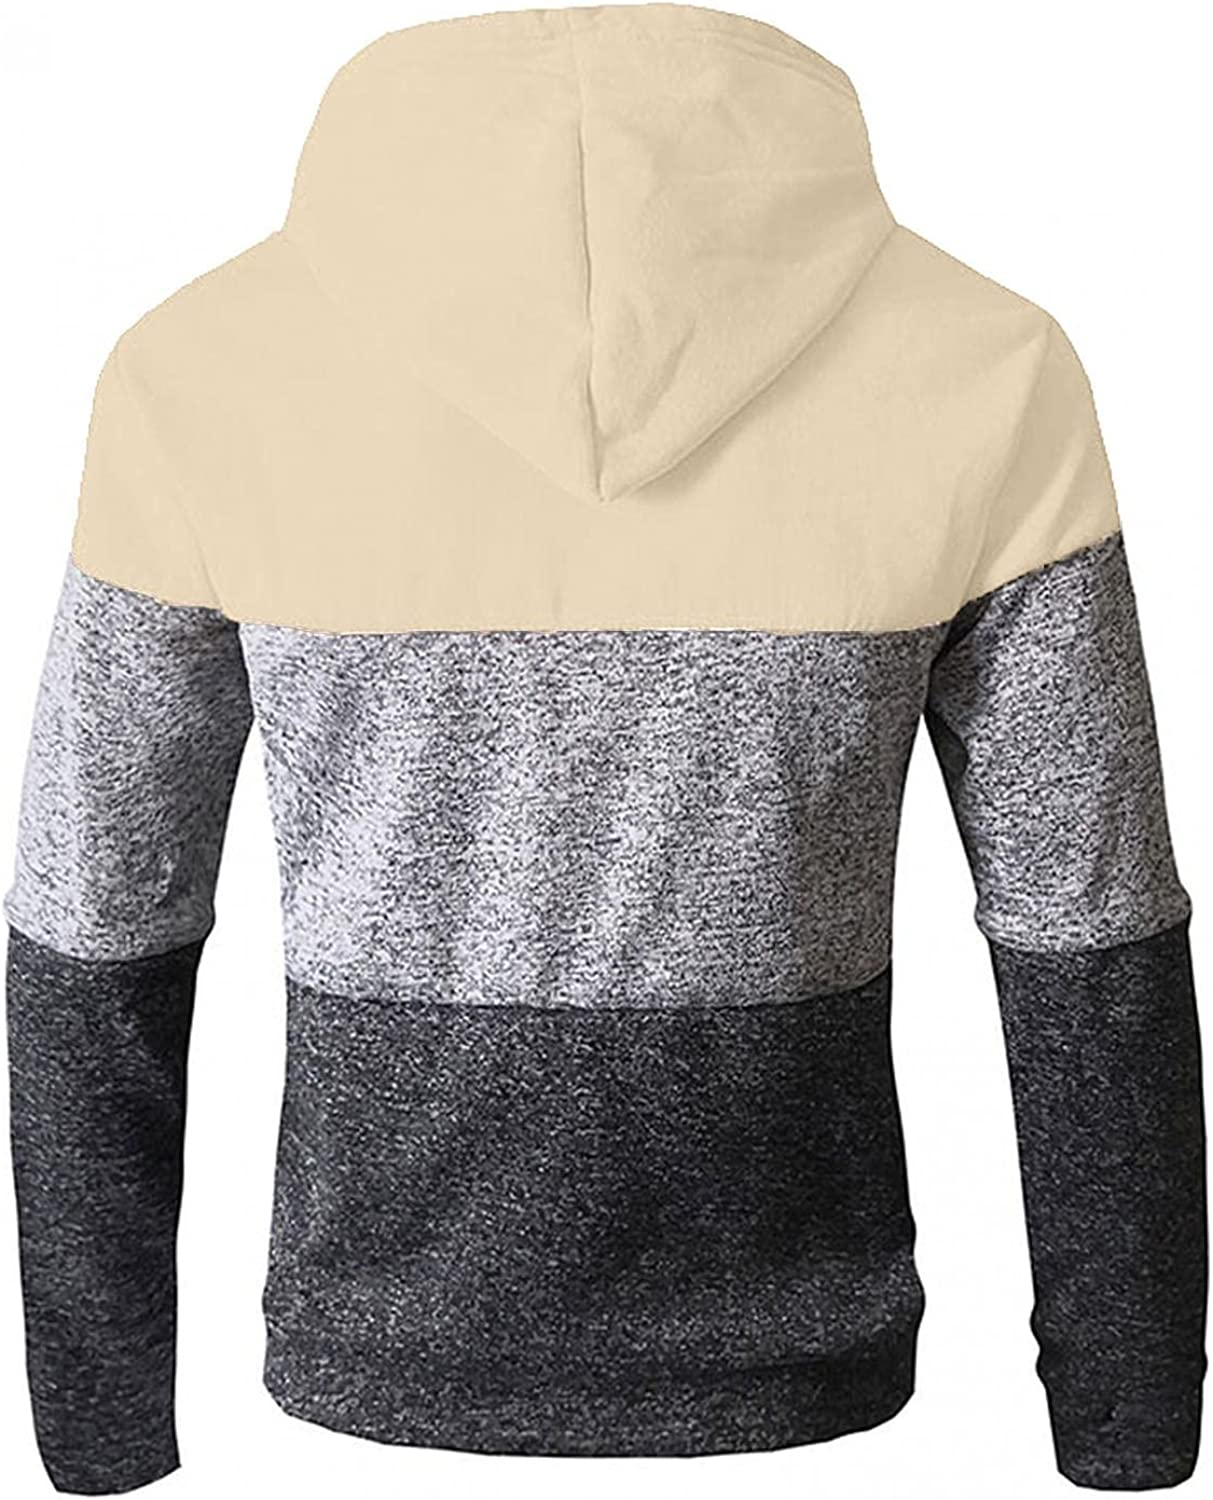 KEEYO Mens Casual Slim Fit Hoodie Active Zip-up Colorblock Lightweight Fall Cardigans Jackets with Pockets